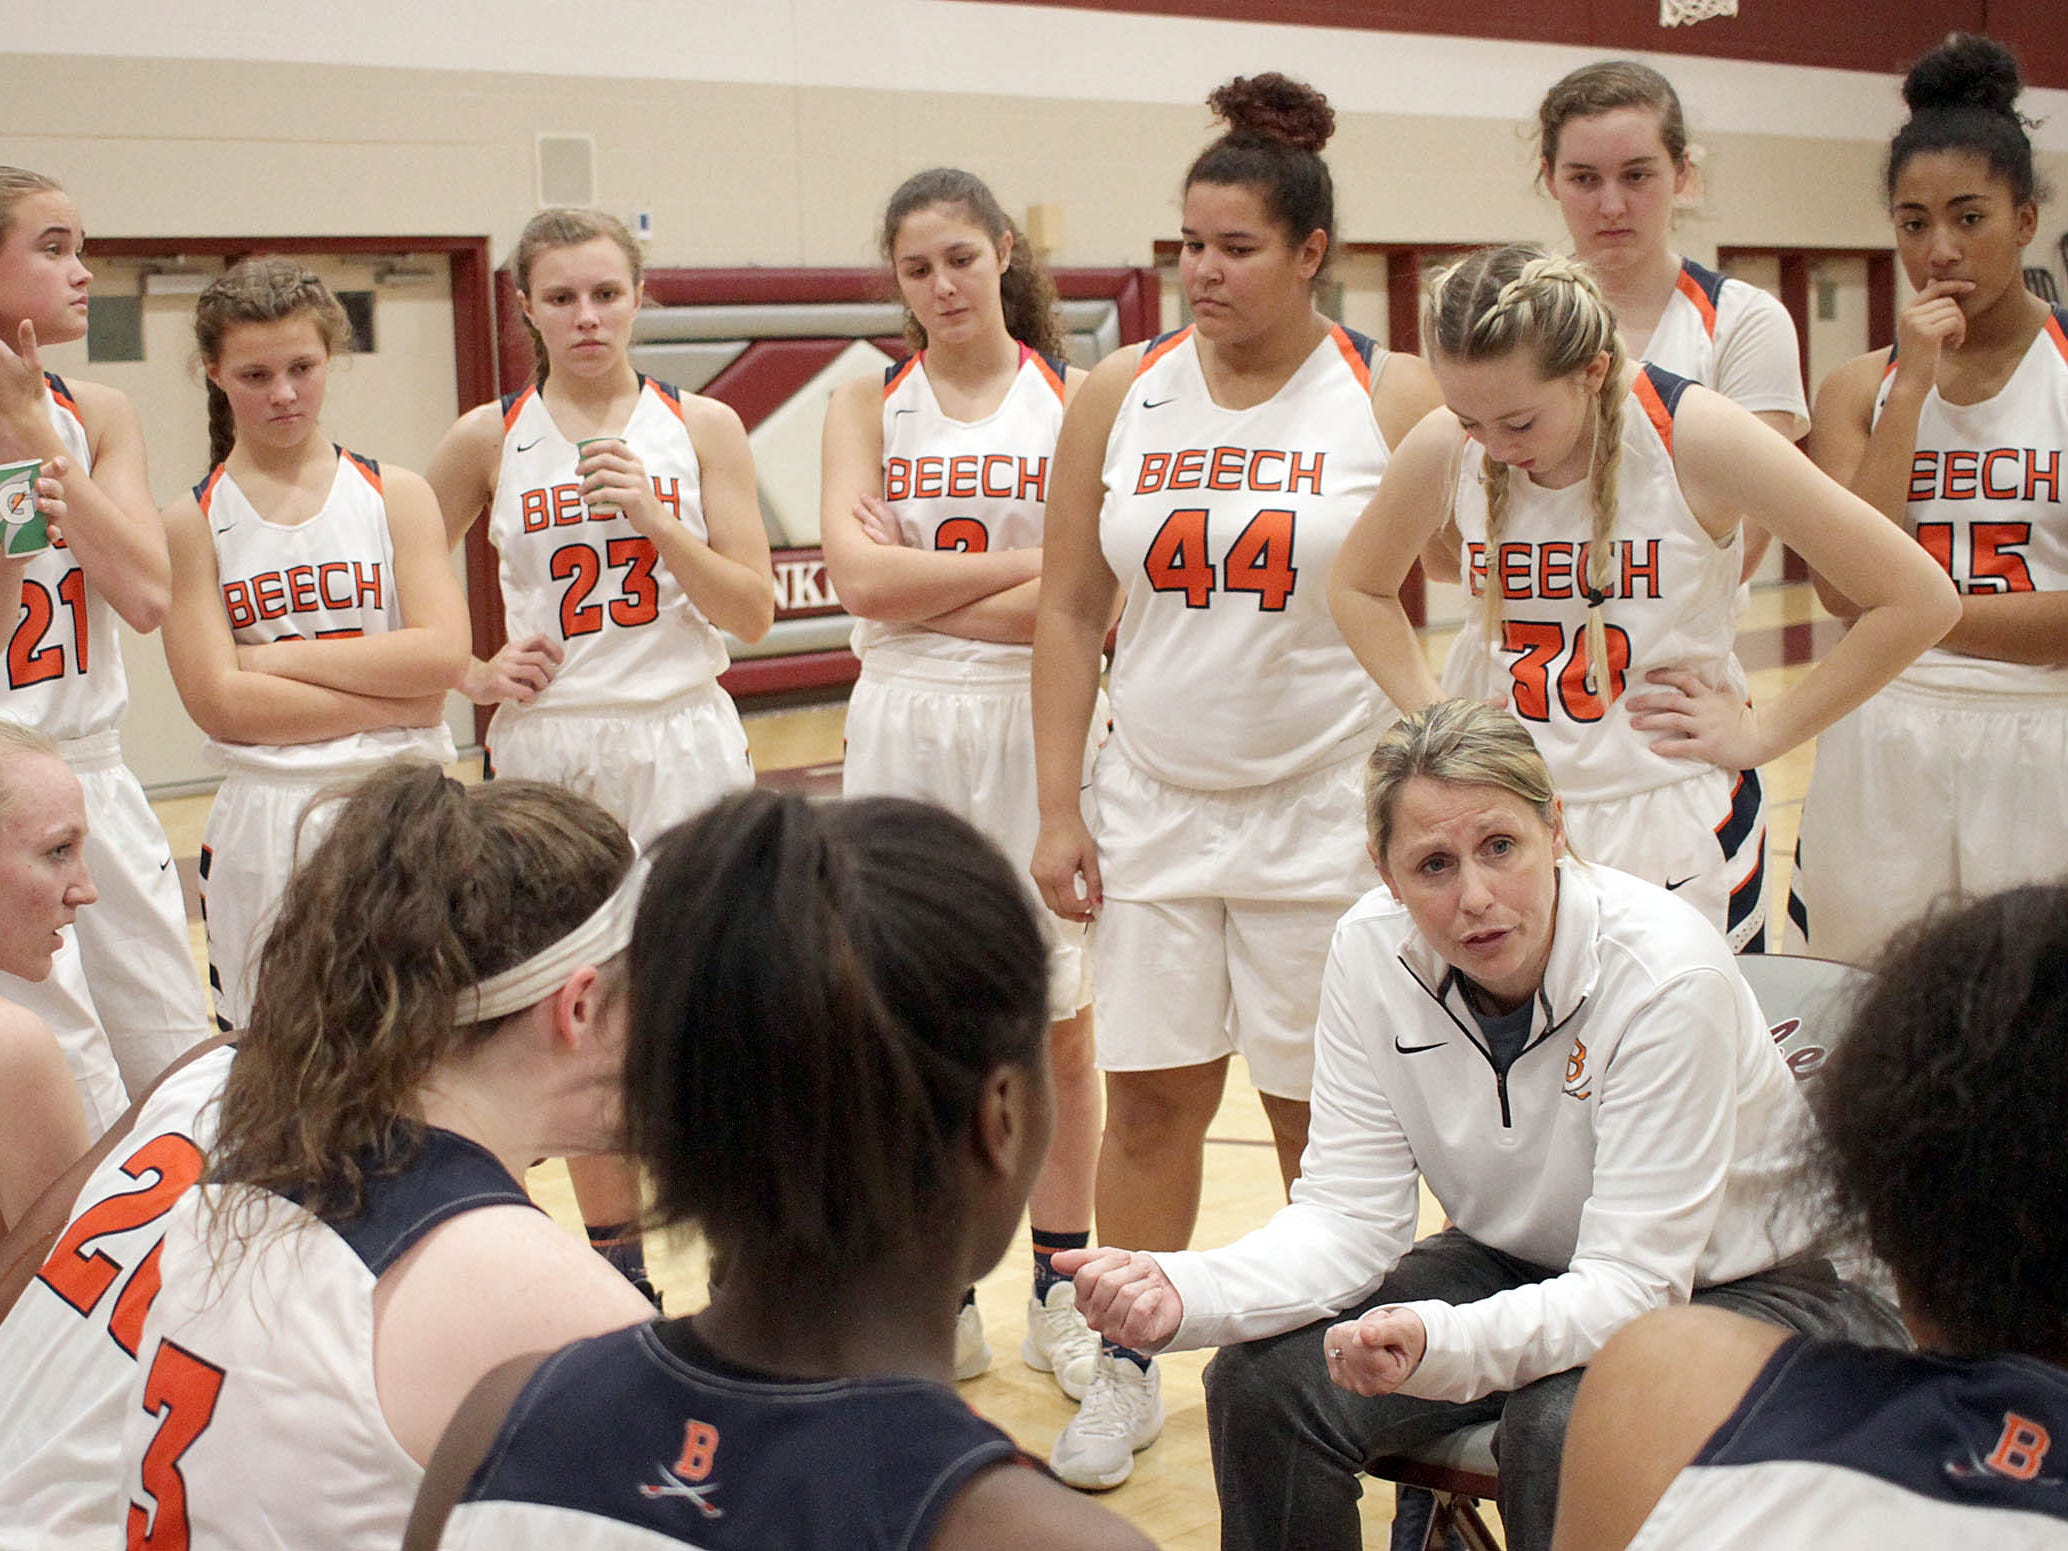 Beech Coach Kristi Utley has a talk with her team as they play Father Ryan on Saturday, December 29, 2018.